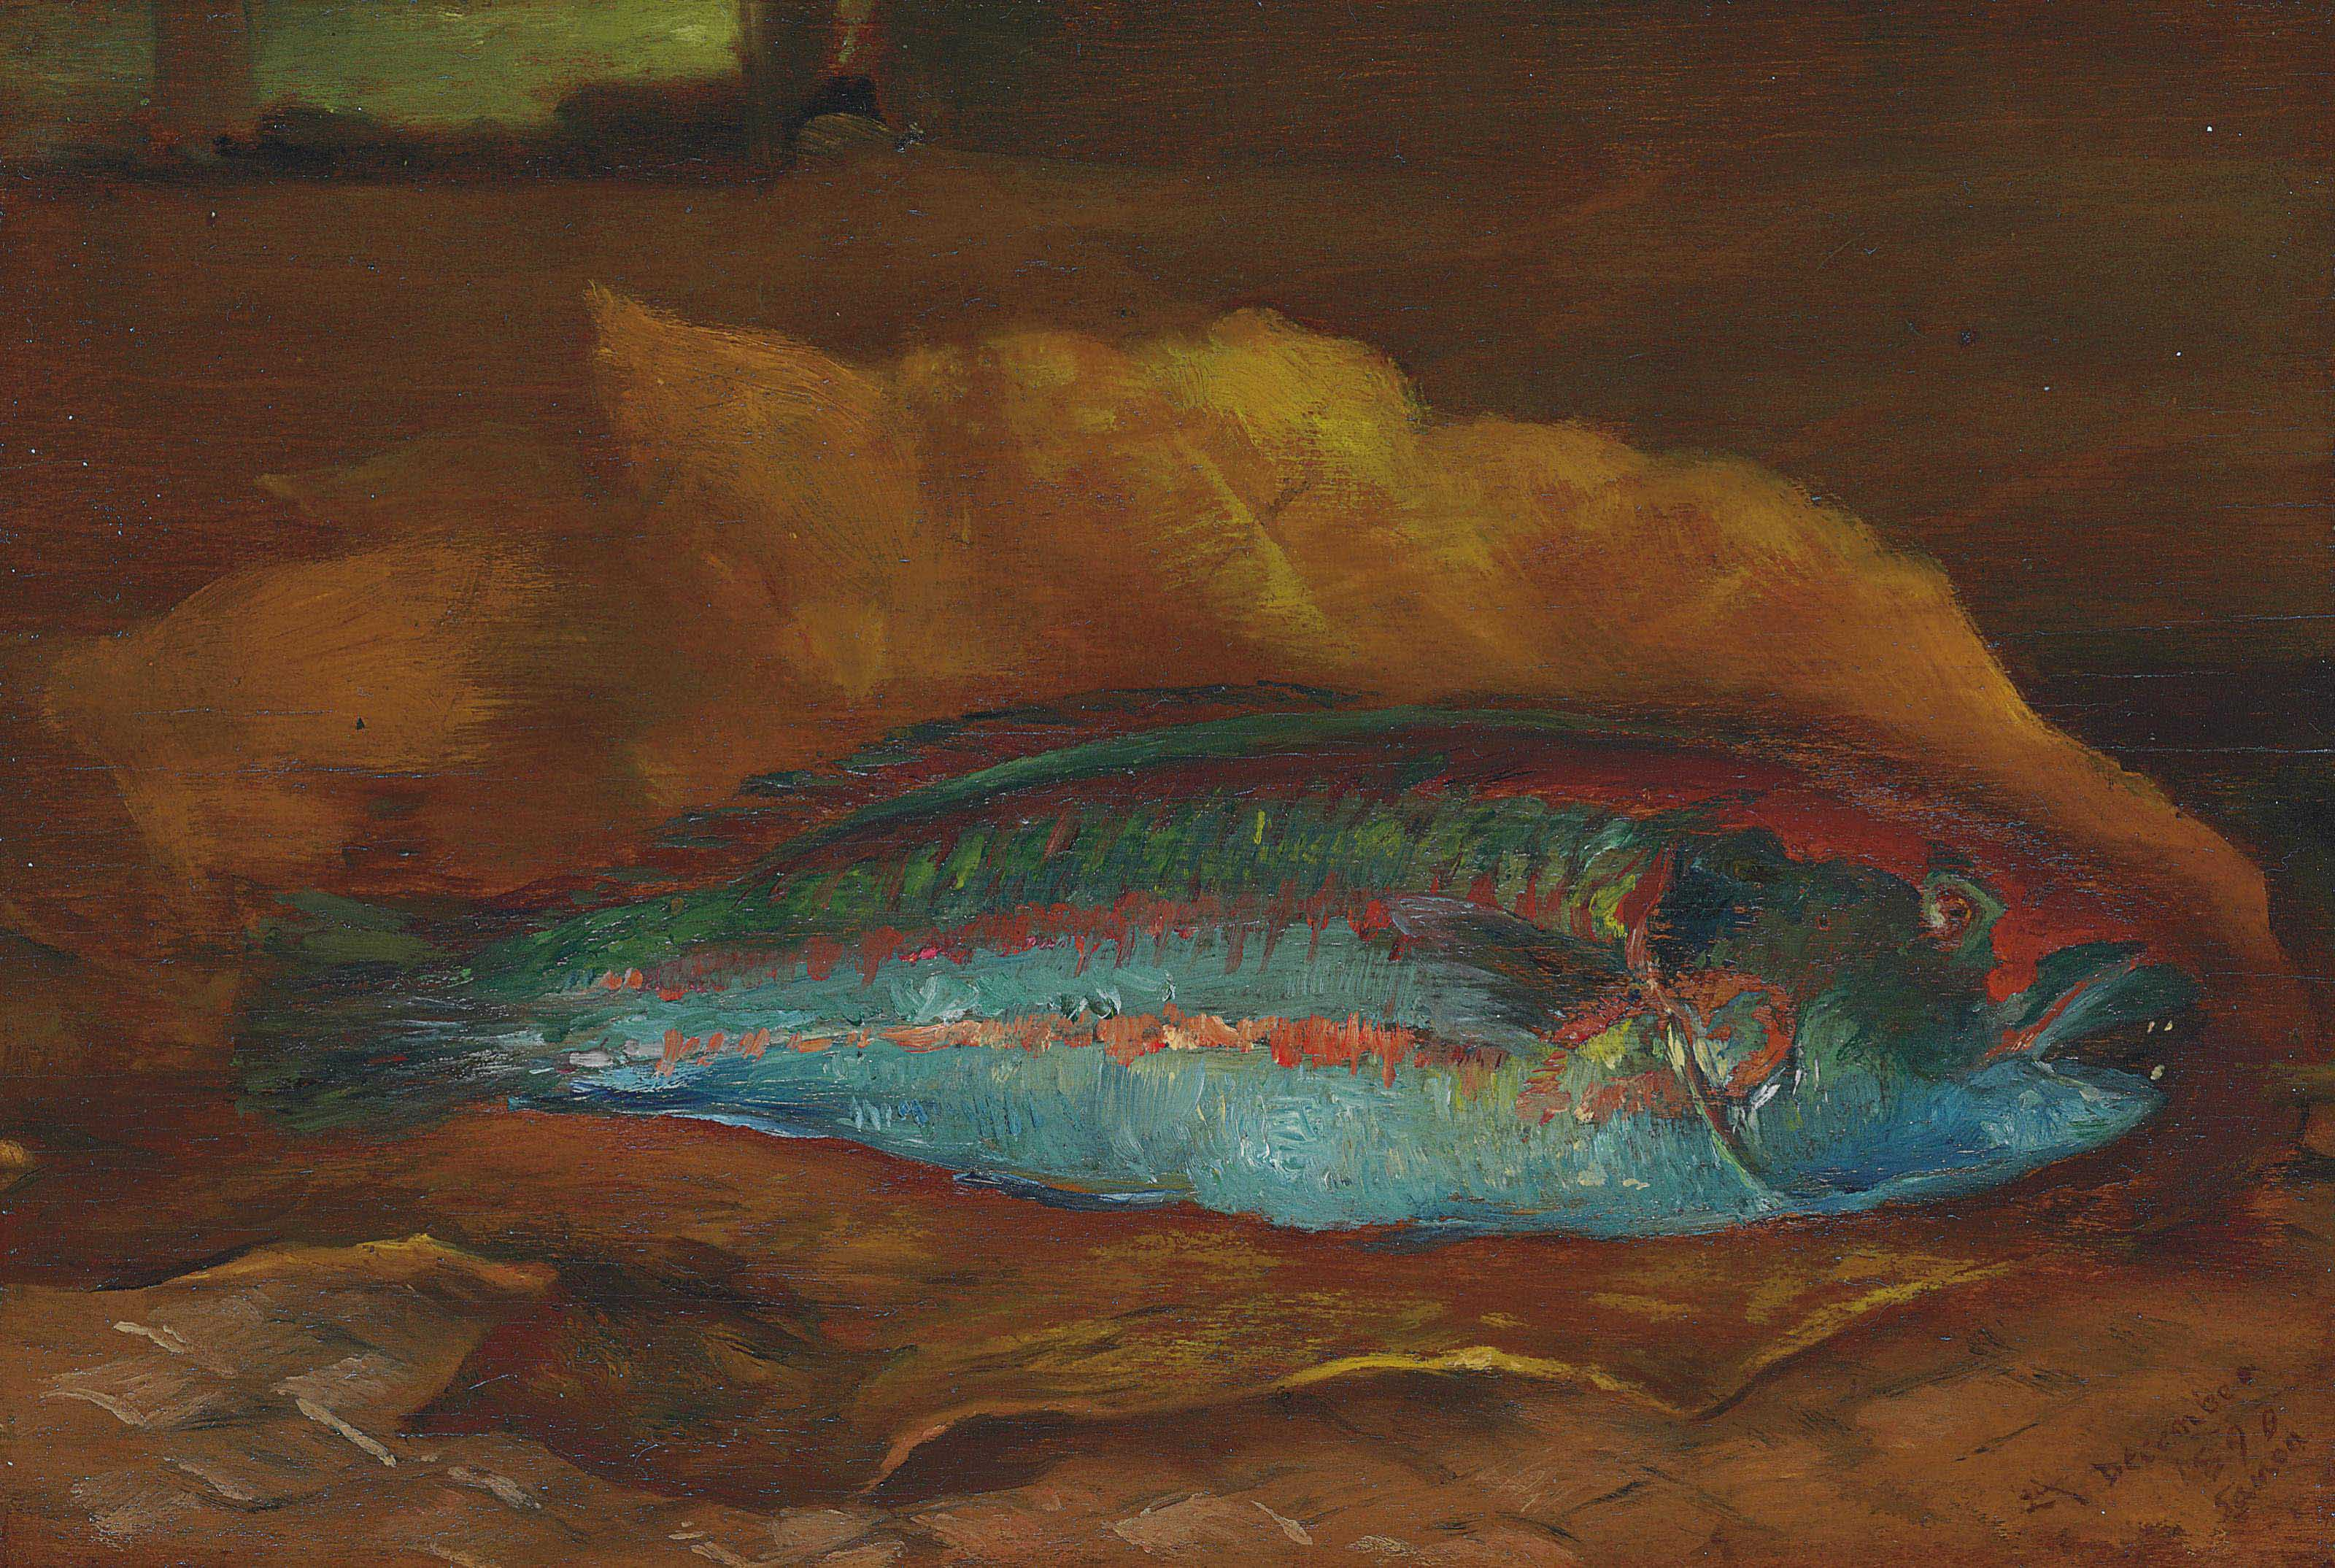 Study of the Parrot Fish